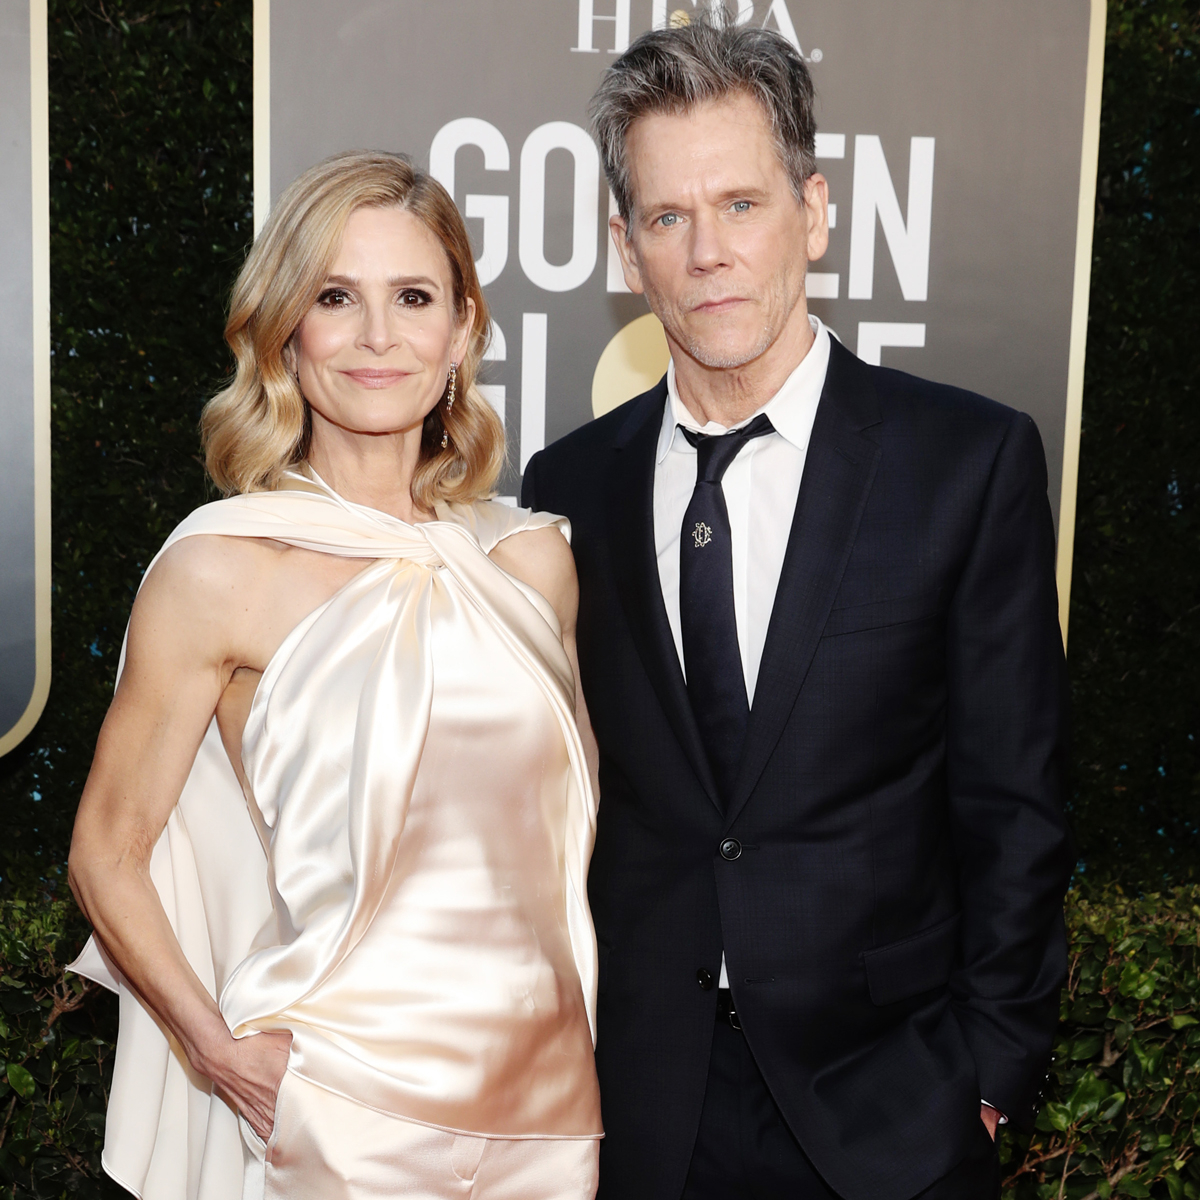 Kyra Sedgwick and Kevin Bacon Turn the 2021 Golden Globes Into Date Night